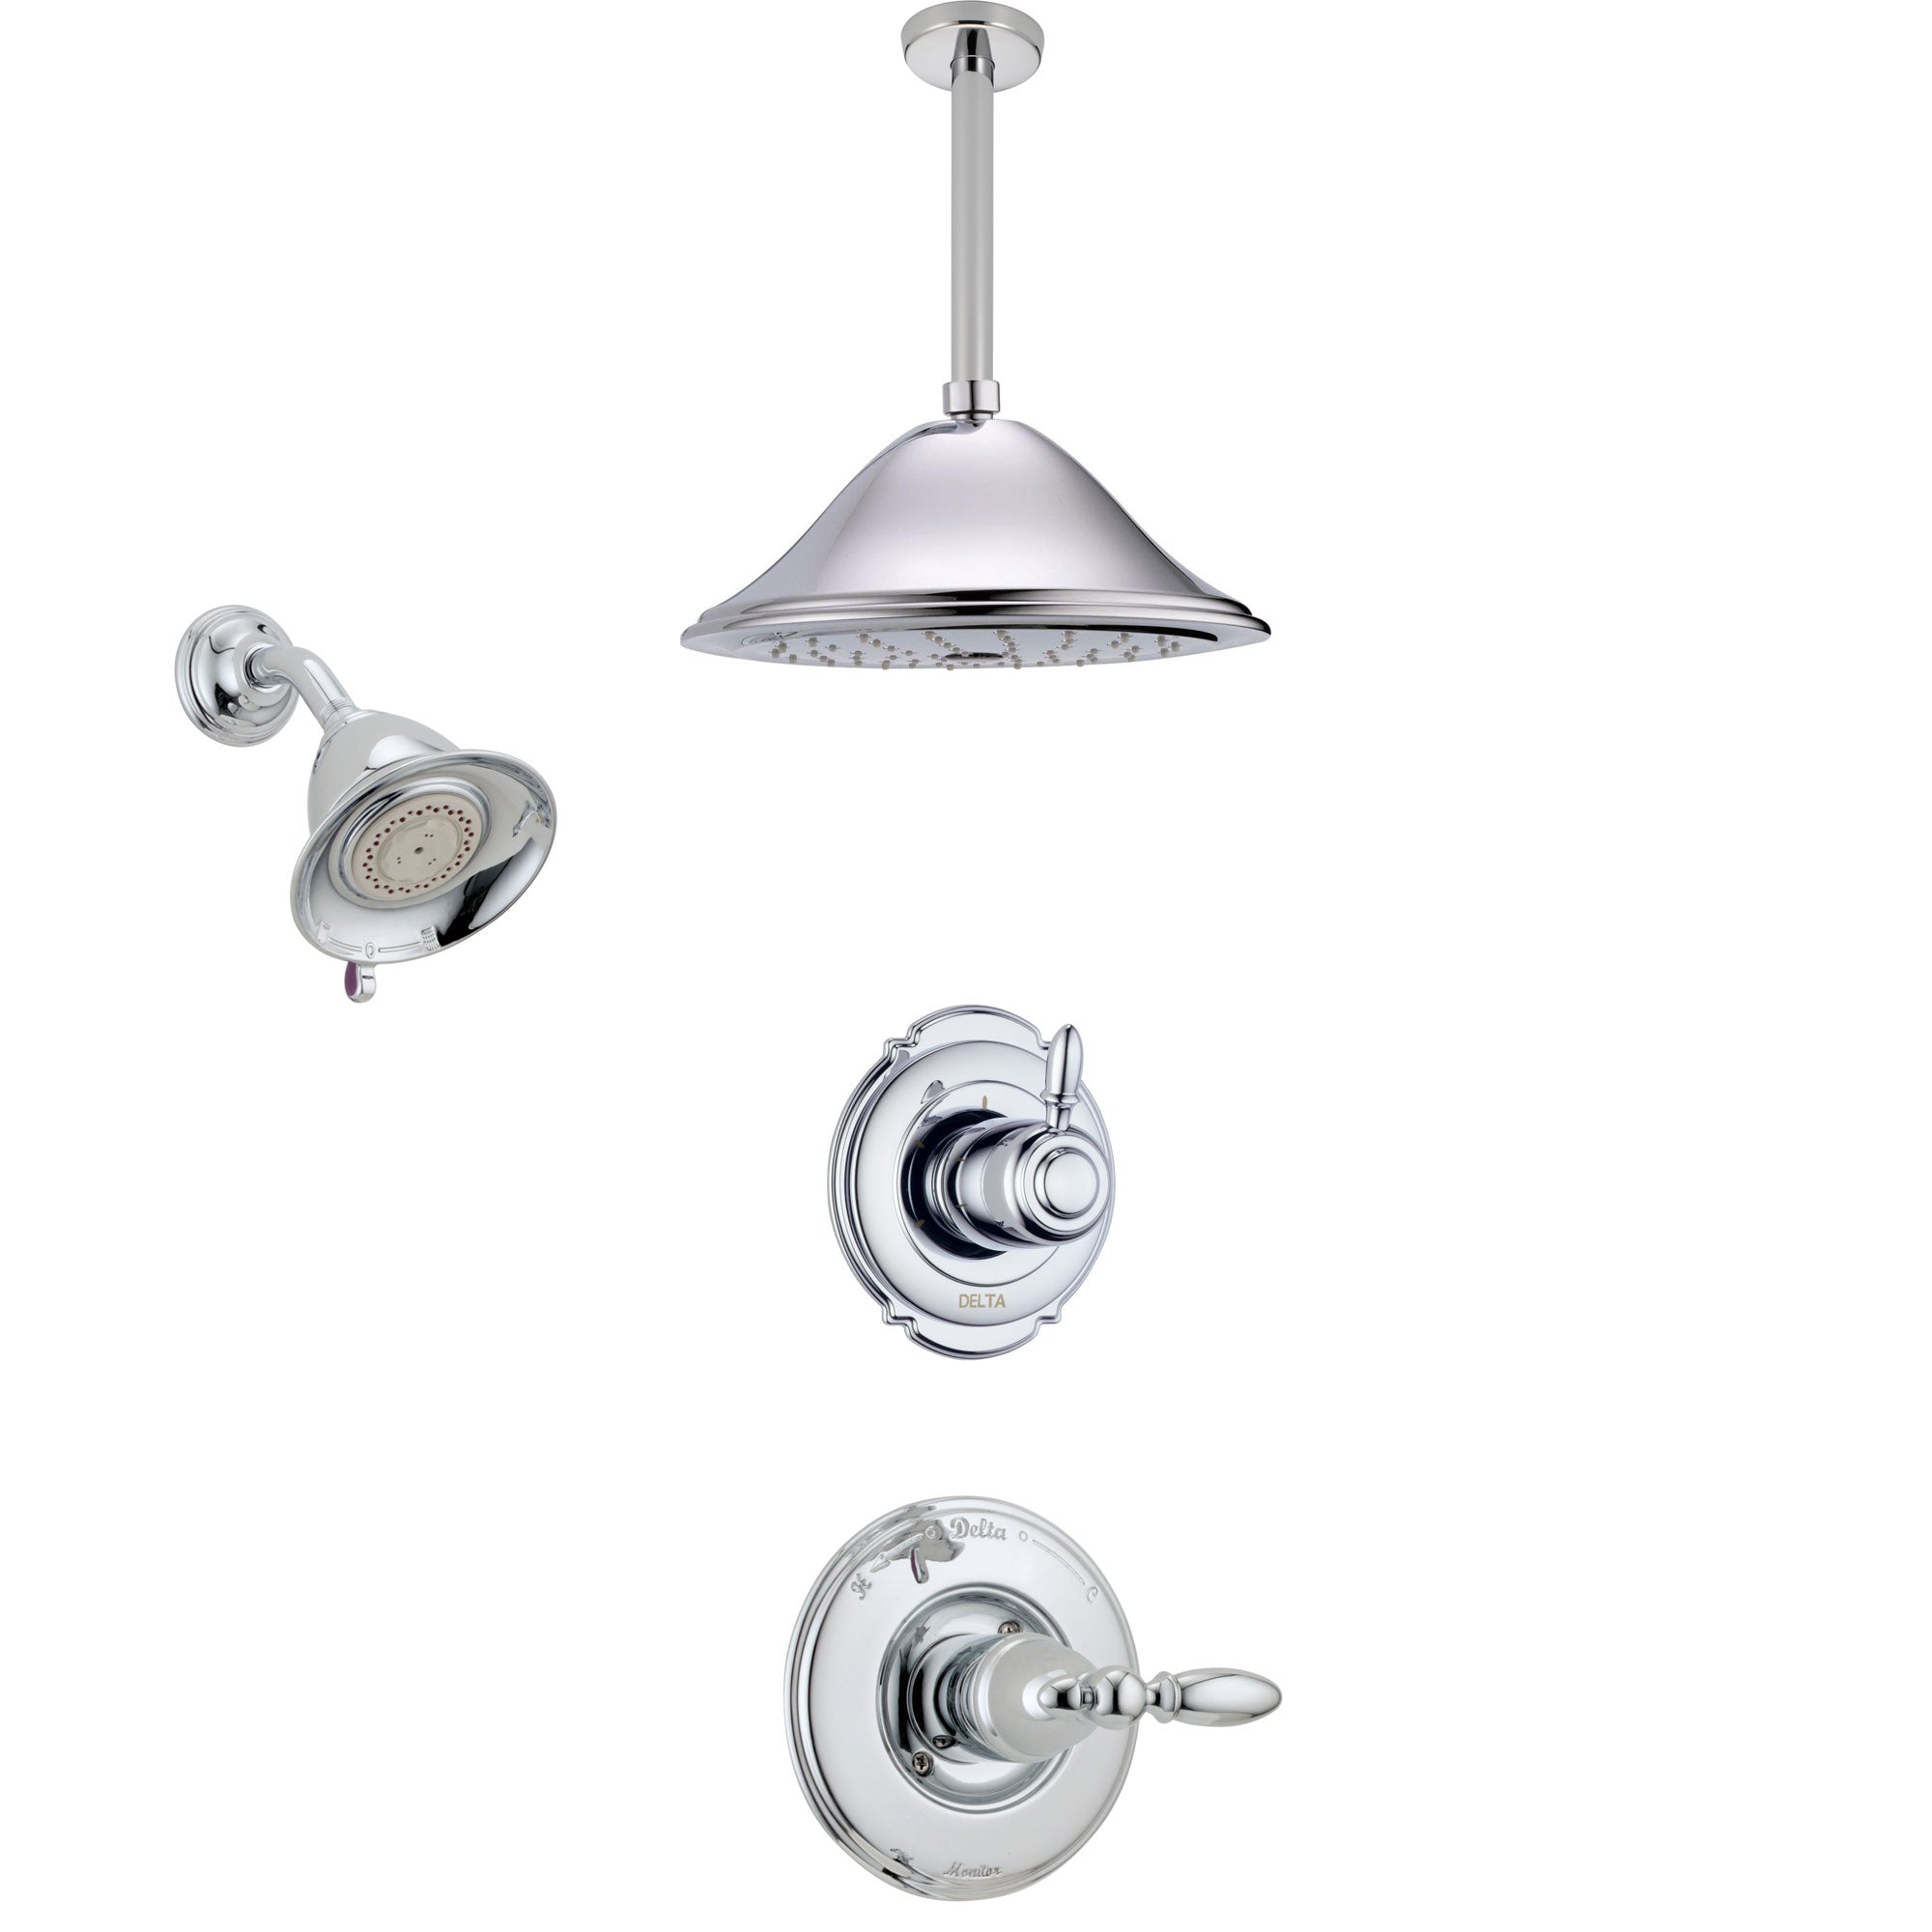 Delta Victorian Chrome Finish Shower System with Control Handle, 3-Setting Diverter, Showerhead, and Ceiling Mount Showerhead SS142555